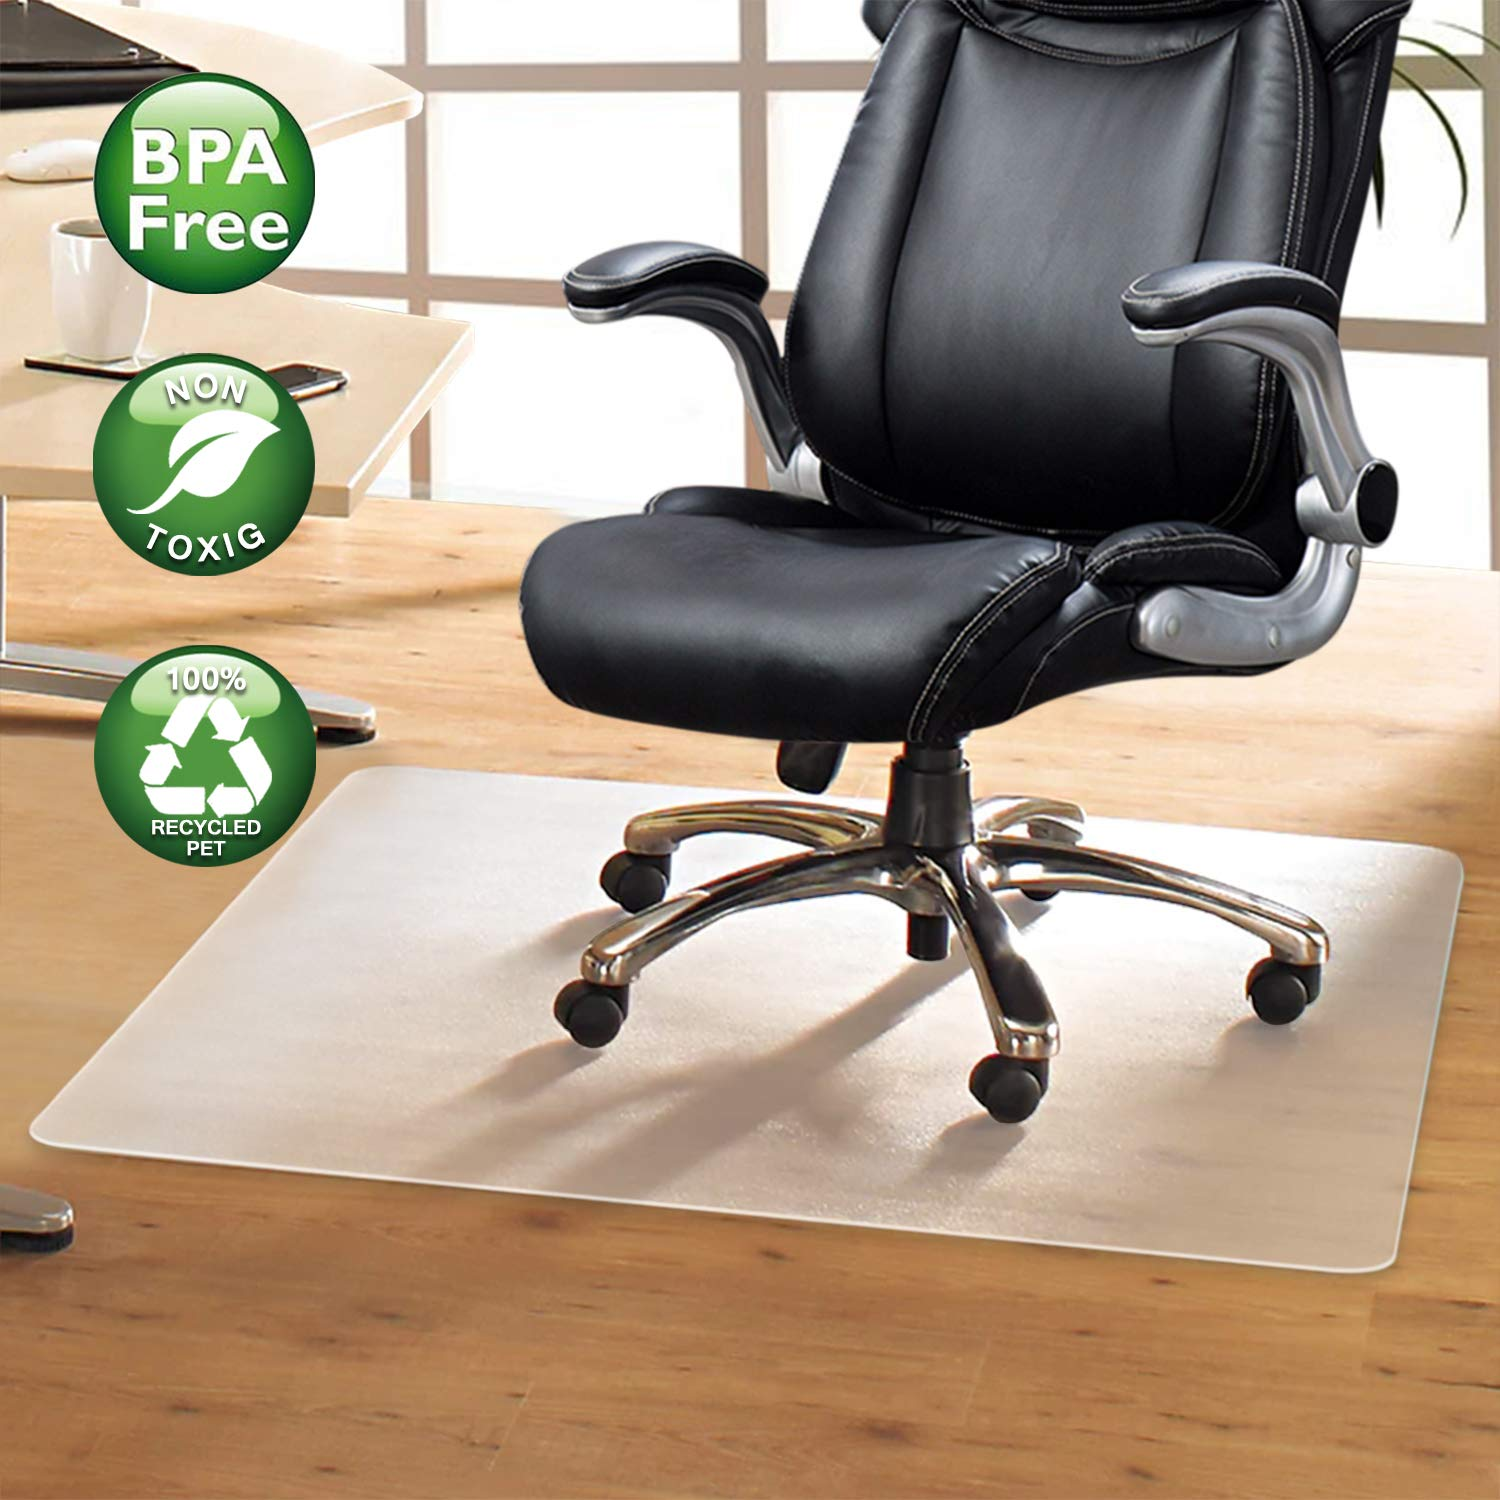 Komene Office Chair Mat: Make The Best Protection for Hardwood Floor,Multiple Sizes - BPA-Free and Rectangular Non-Toxic,48''×30'' Great Clear Thick Vinyl Mat for Rolling Chair and Computer Desk